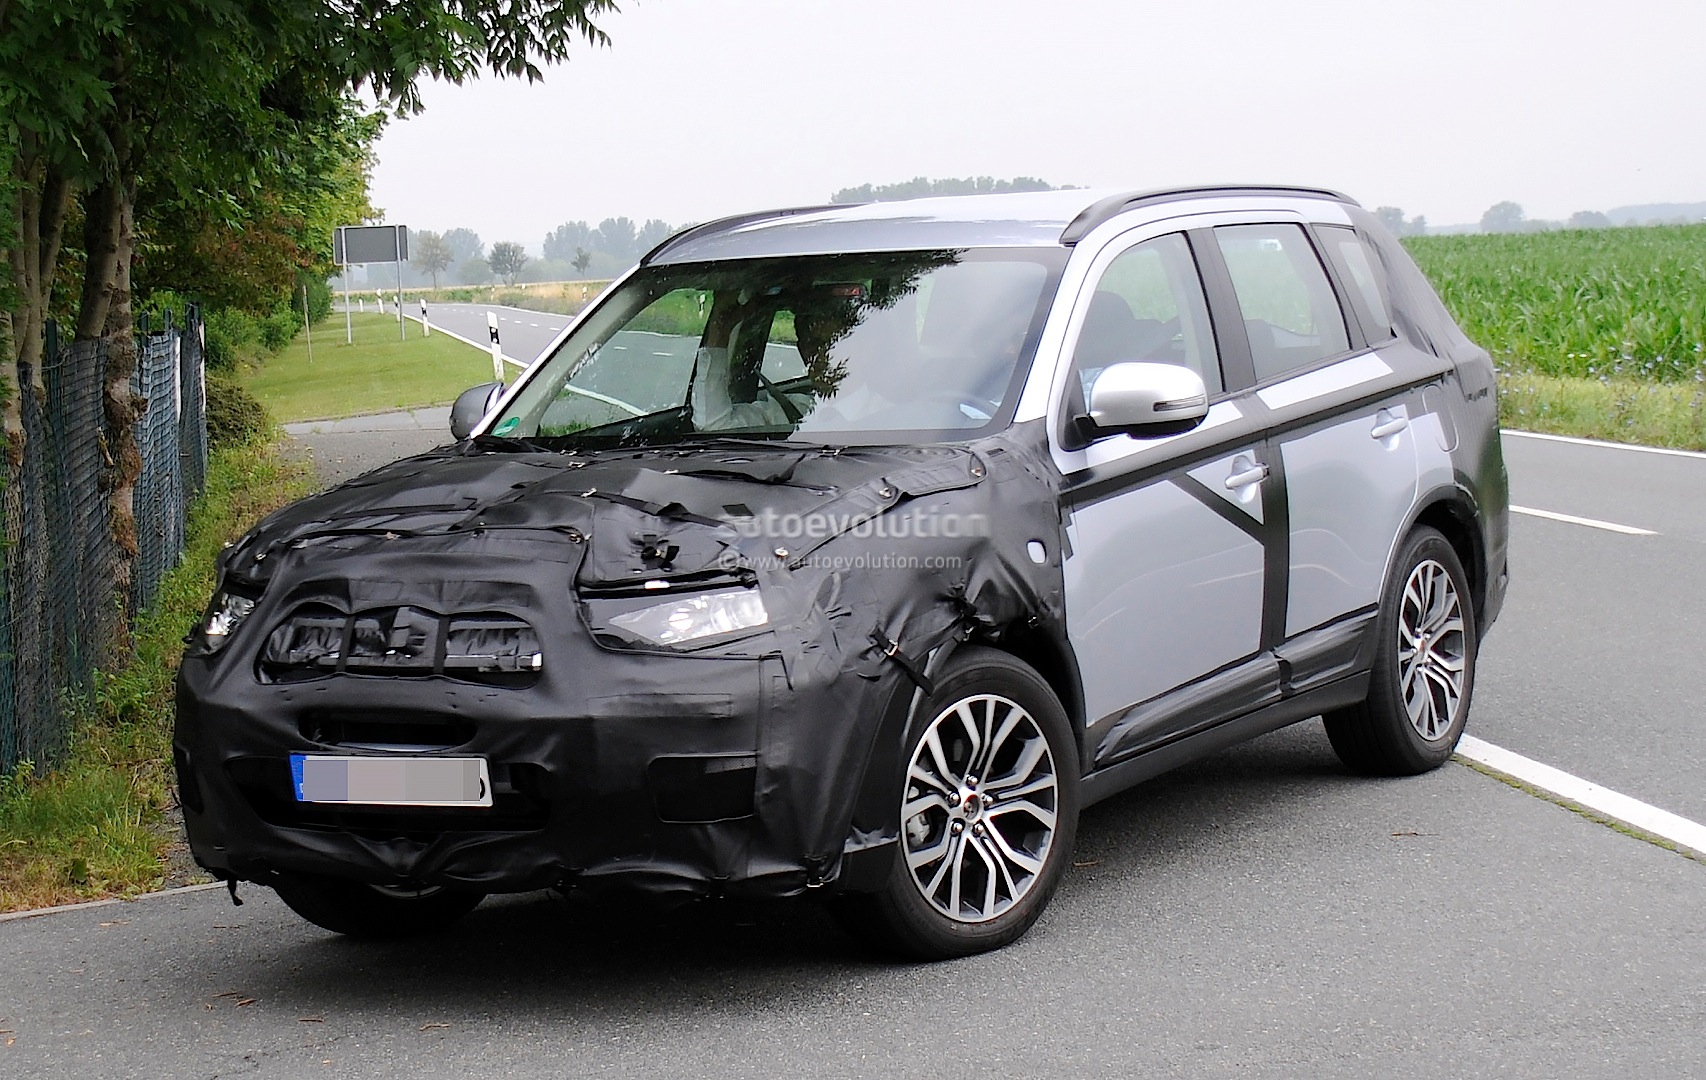 2015 Mitsubishi Outlander Spied Again, This Time in Europe - autoevolution